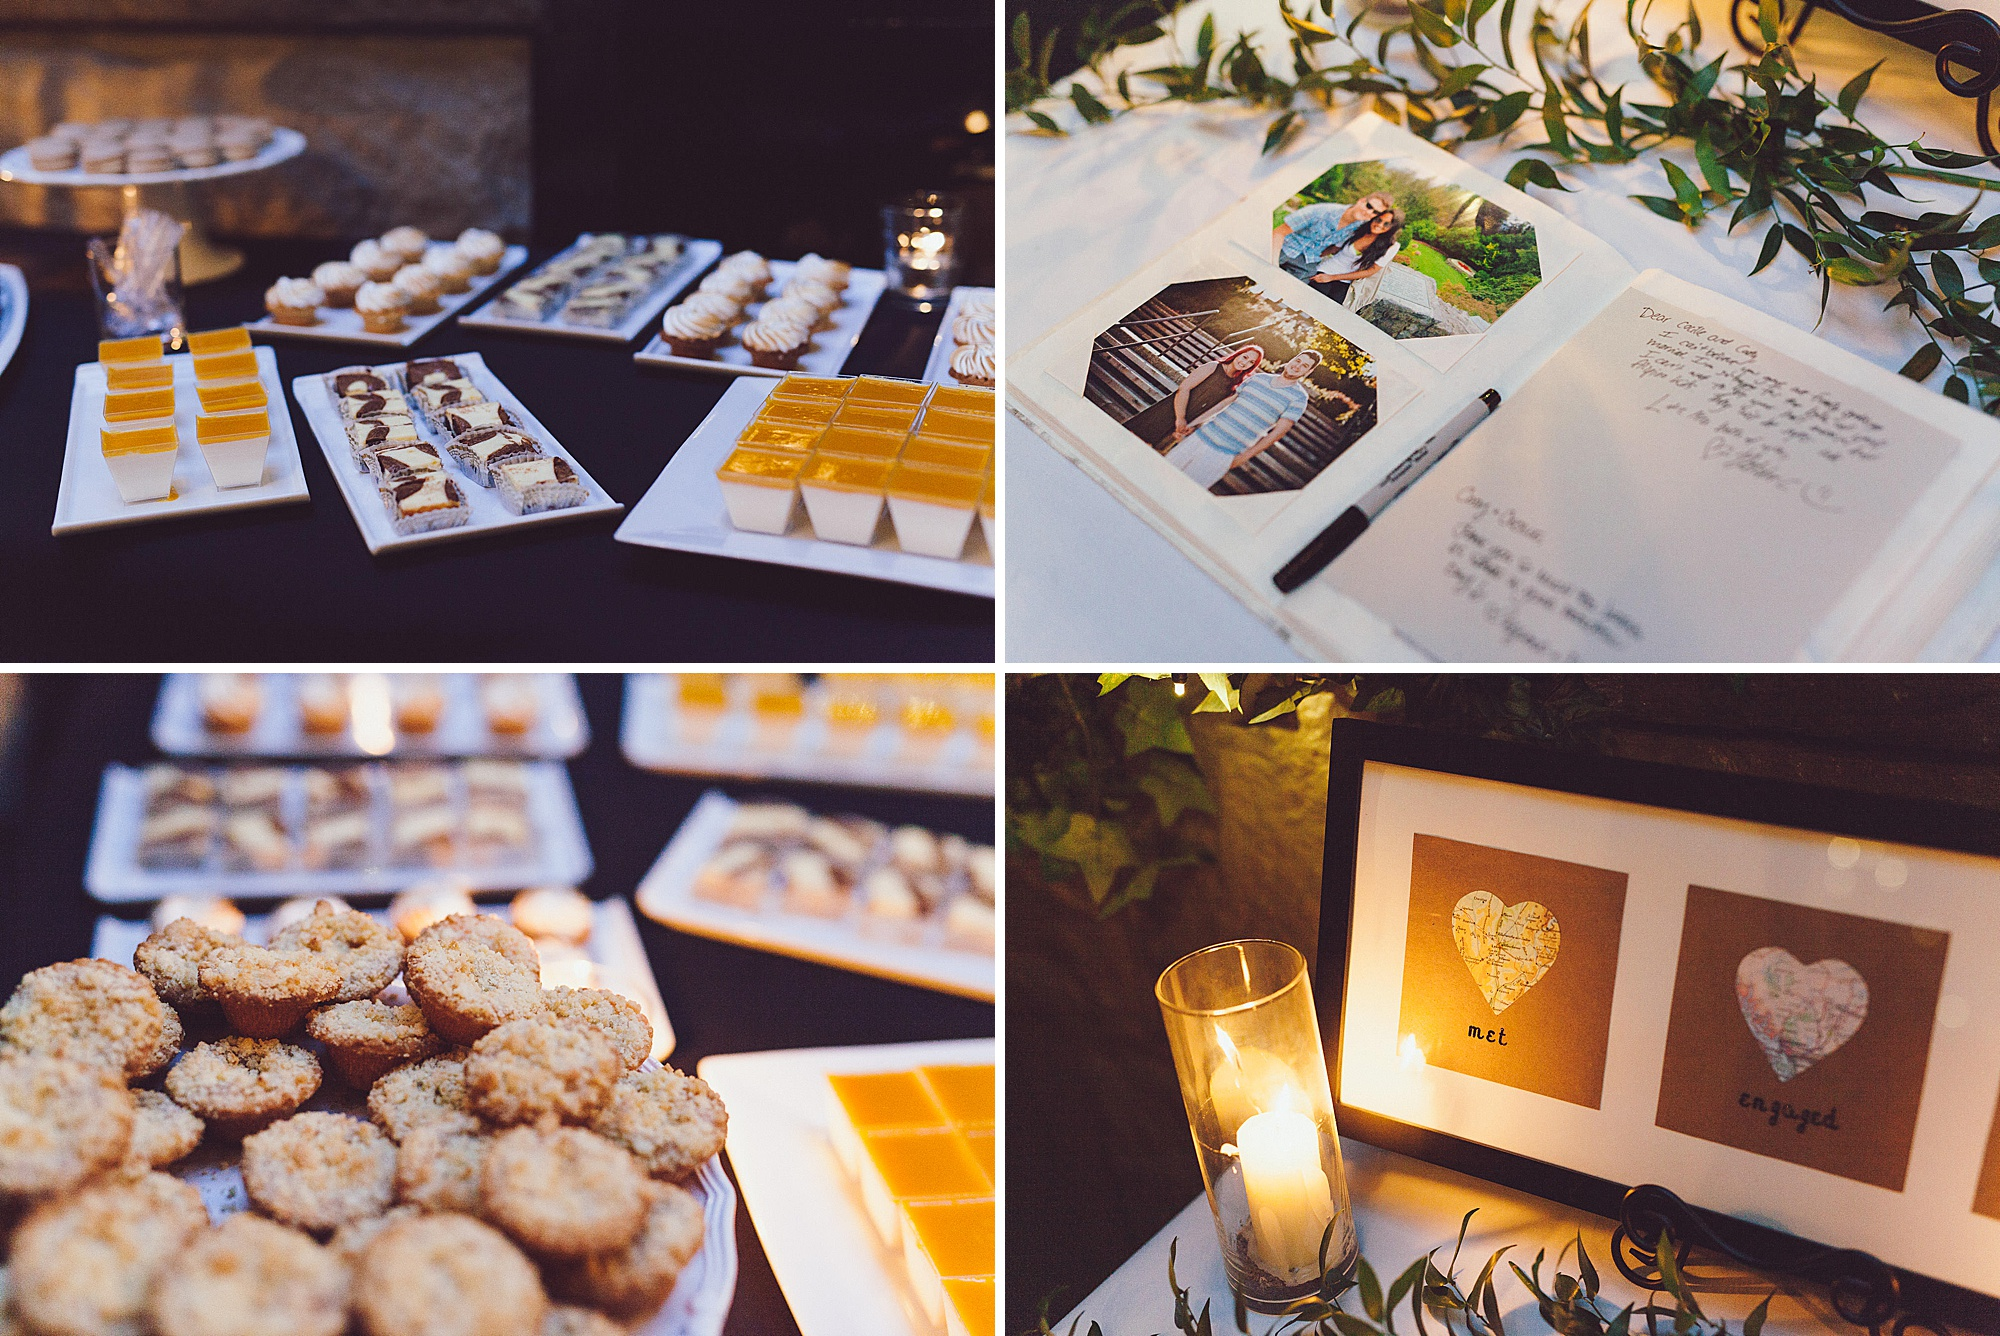 Dessert and details at the reception